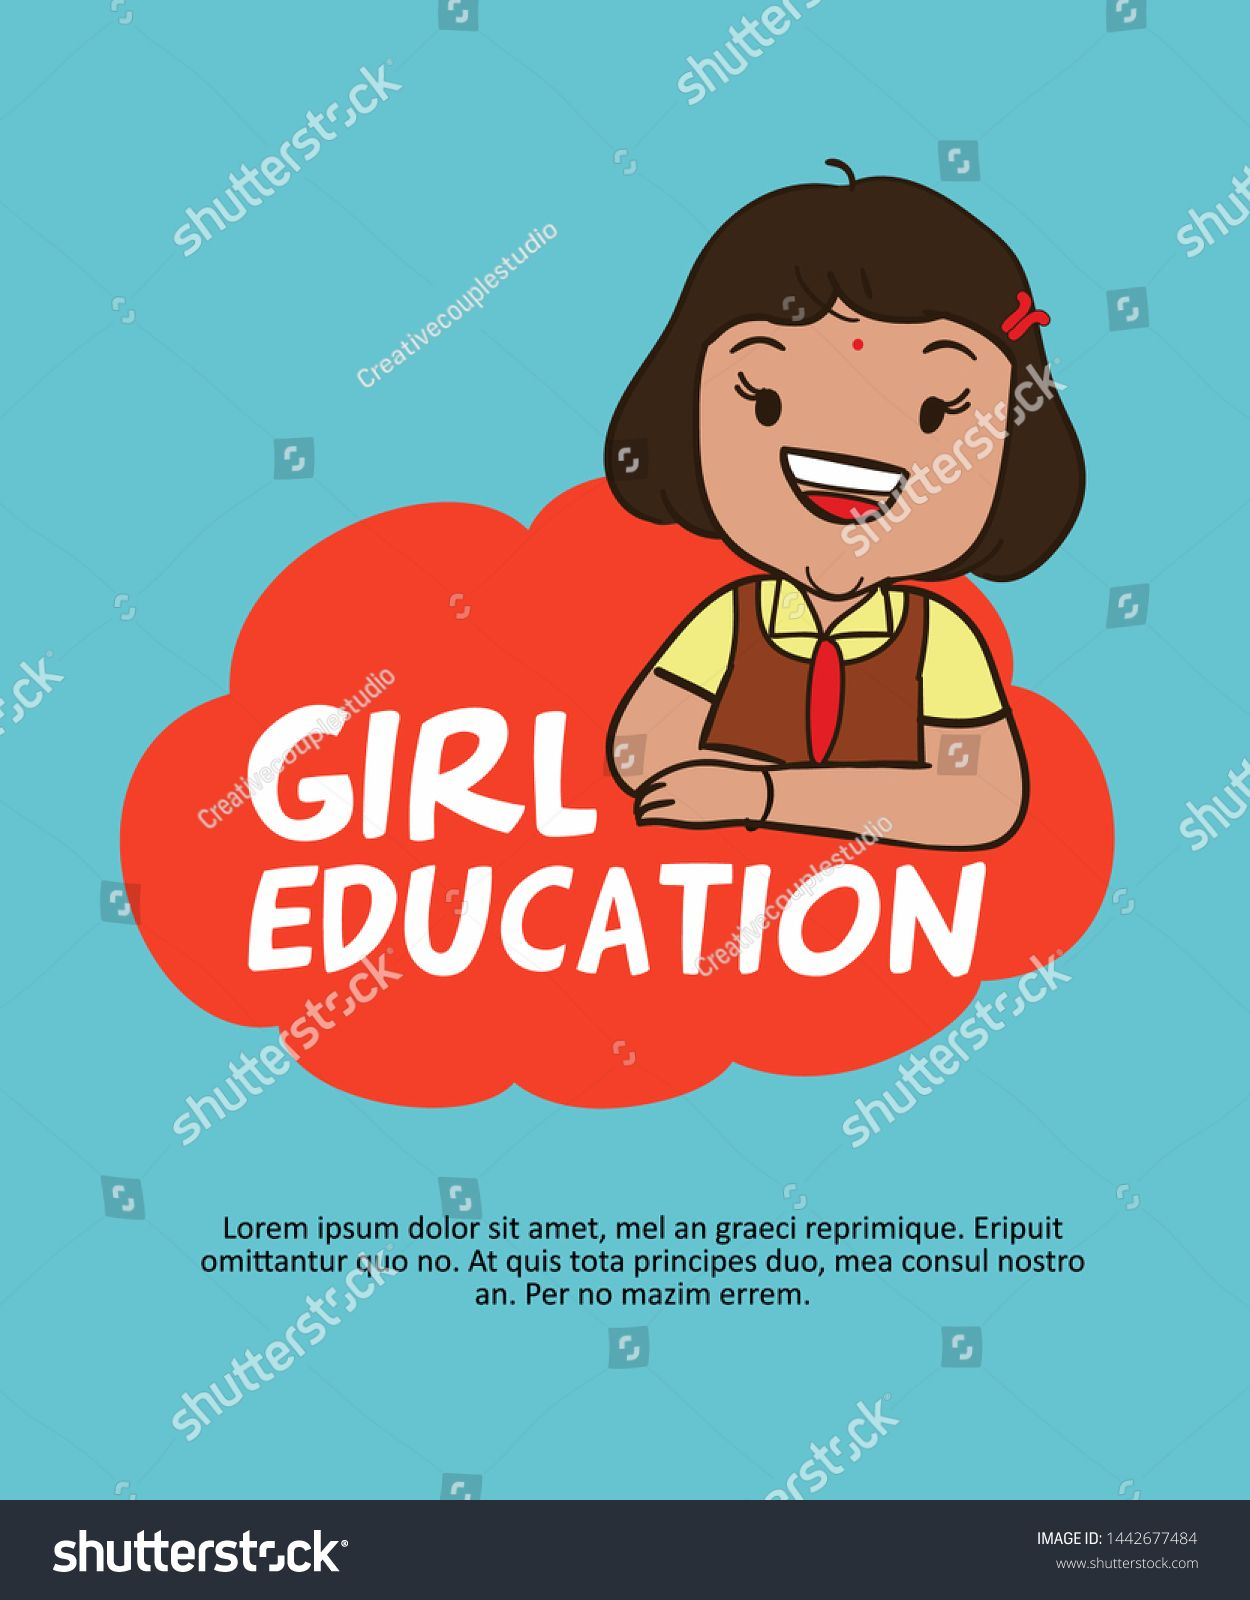 Cute Indian School Girl Cartoon Character Save Girl Girl Education Images Vector Royalty Free Image In 2020 Girl Cartoon Girl Cartoon Characters Cartoon Girl Images